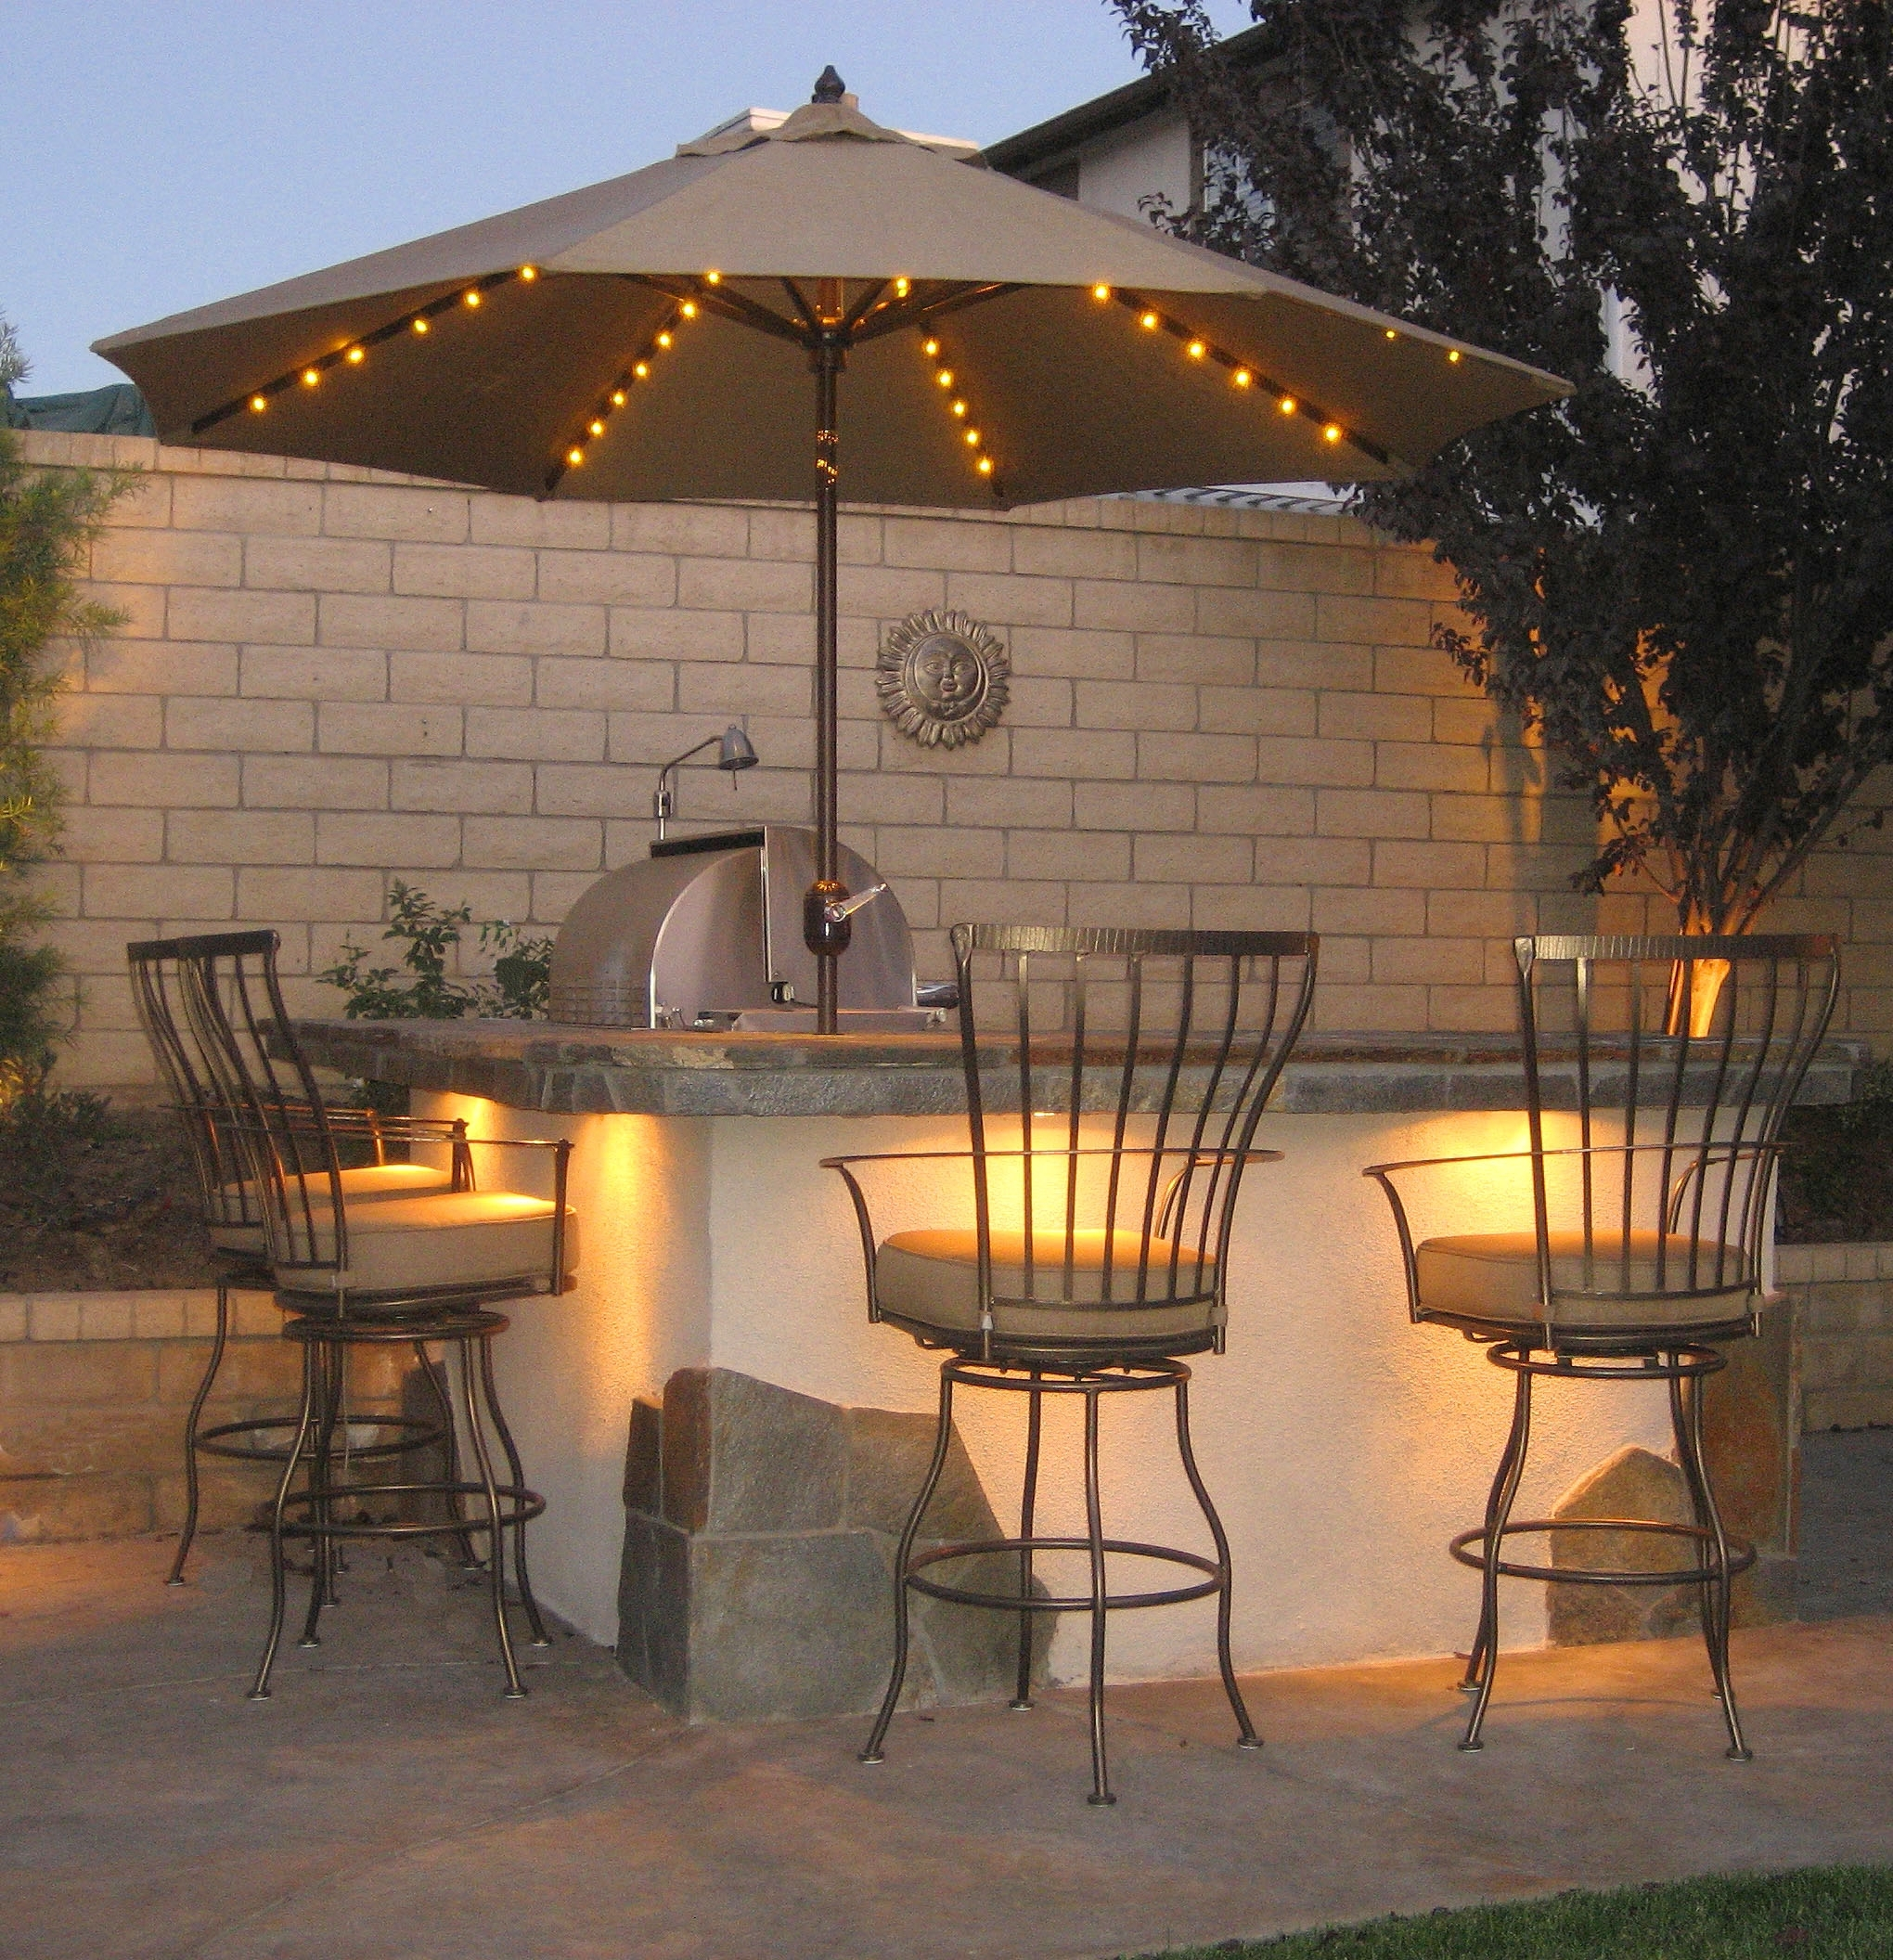 Fashionable Lighted Patio Umbrellas — Mistikcamping Home Design : Different Throughout Patio Umbrellas With Solar Led Lights (View 8 of 20)